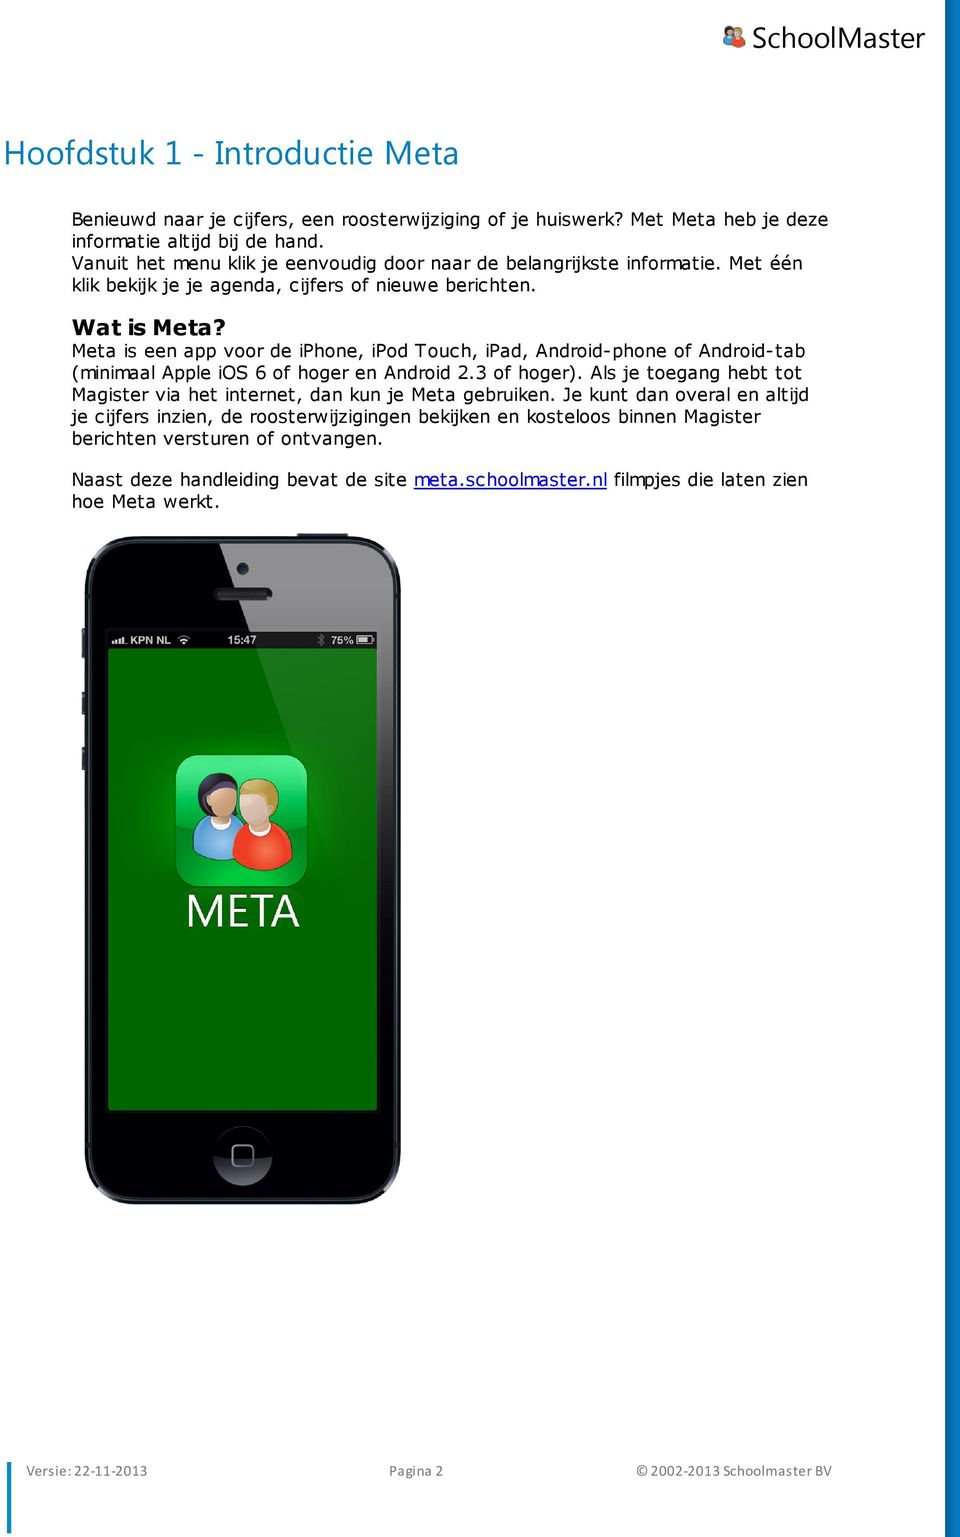 Meta is een app voor de iphone, ipod Touch, ipad, Android-phone of Android-tab (minimaal Apple ios 6 of hoger en Android 2.3 of hoger).